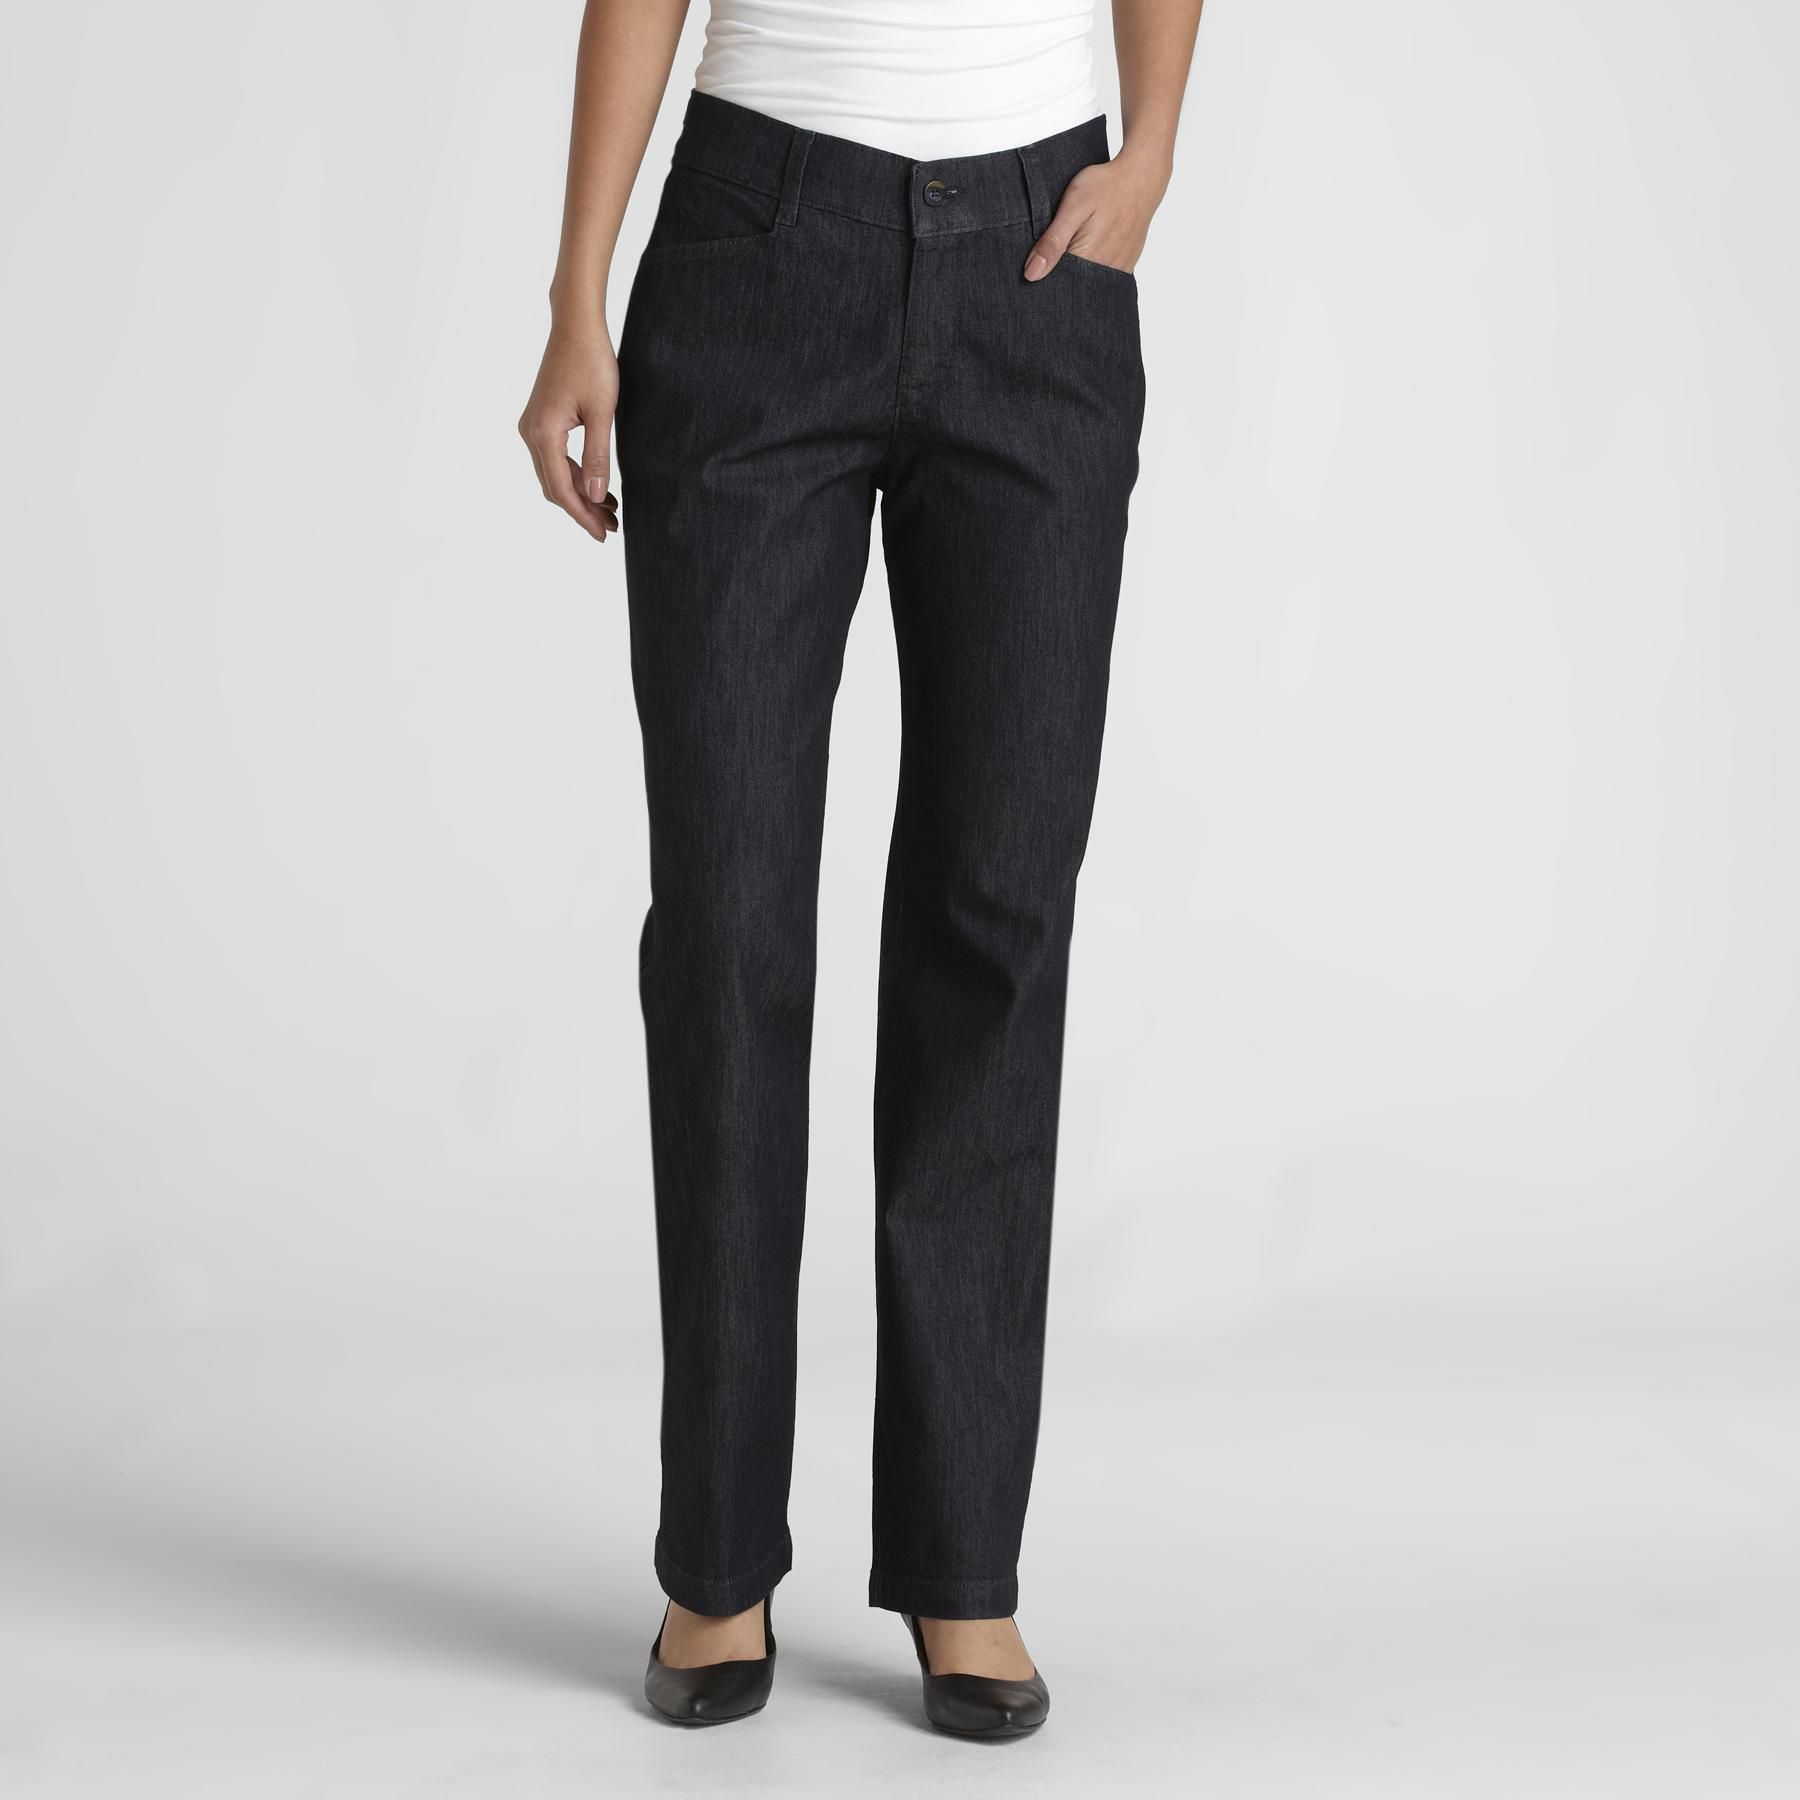 LEE Women's Relaxed Fit Pants at Sears.com